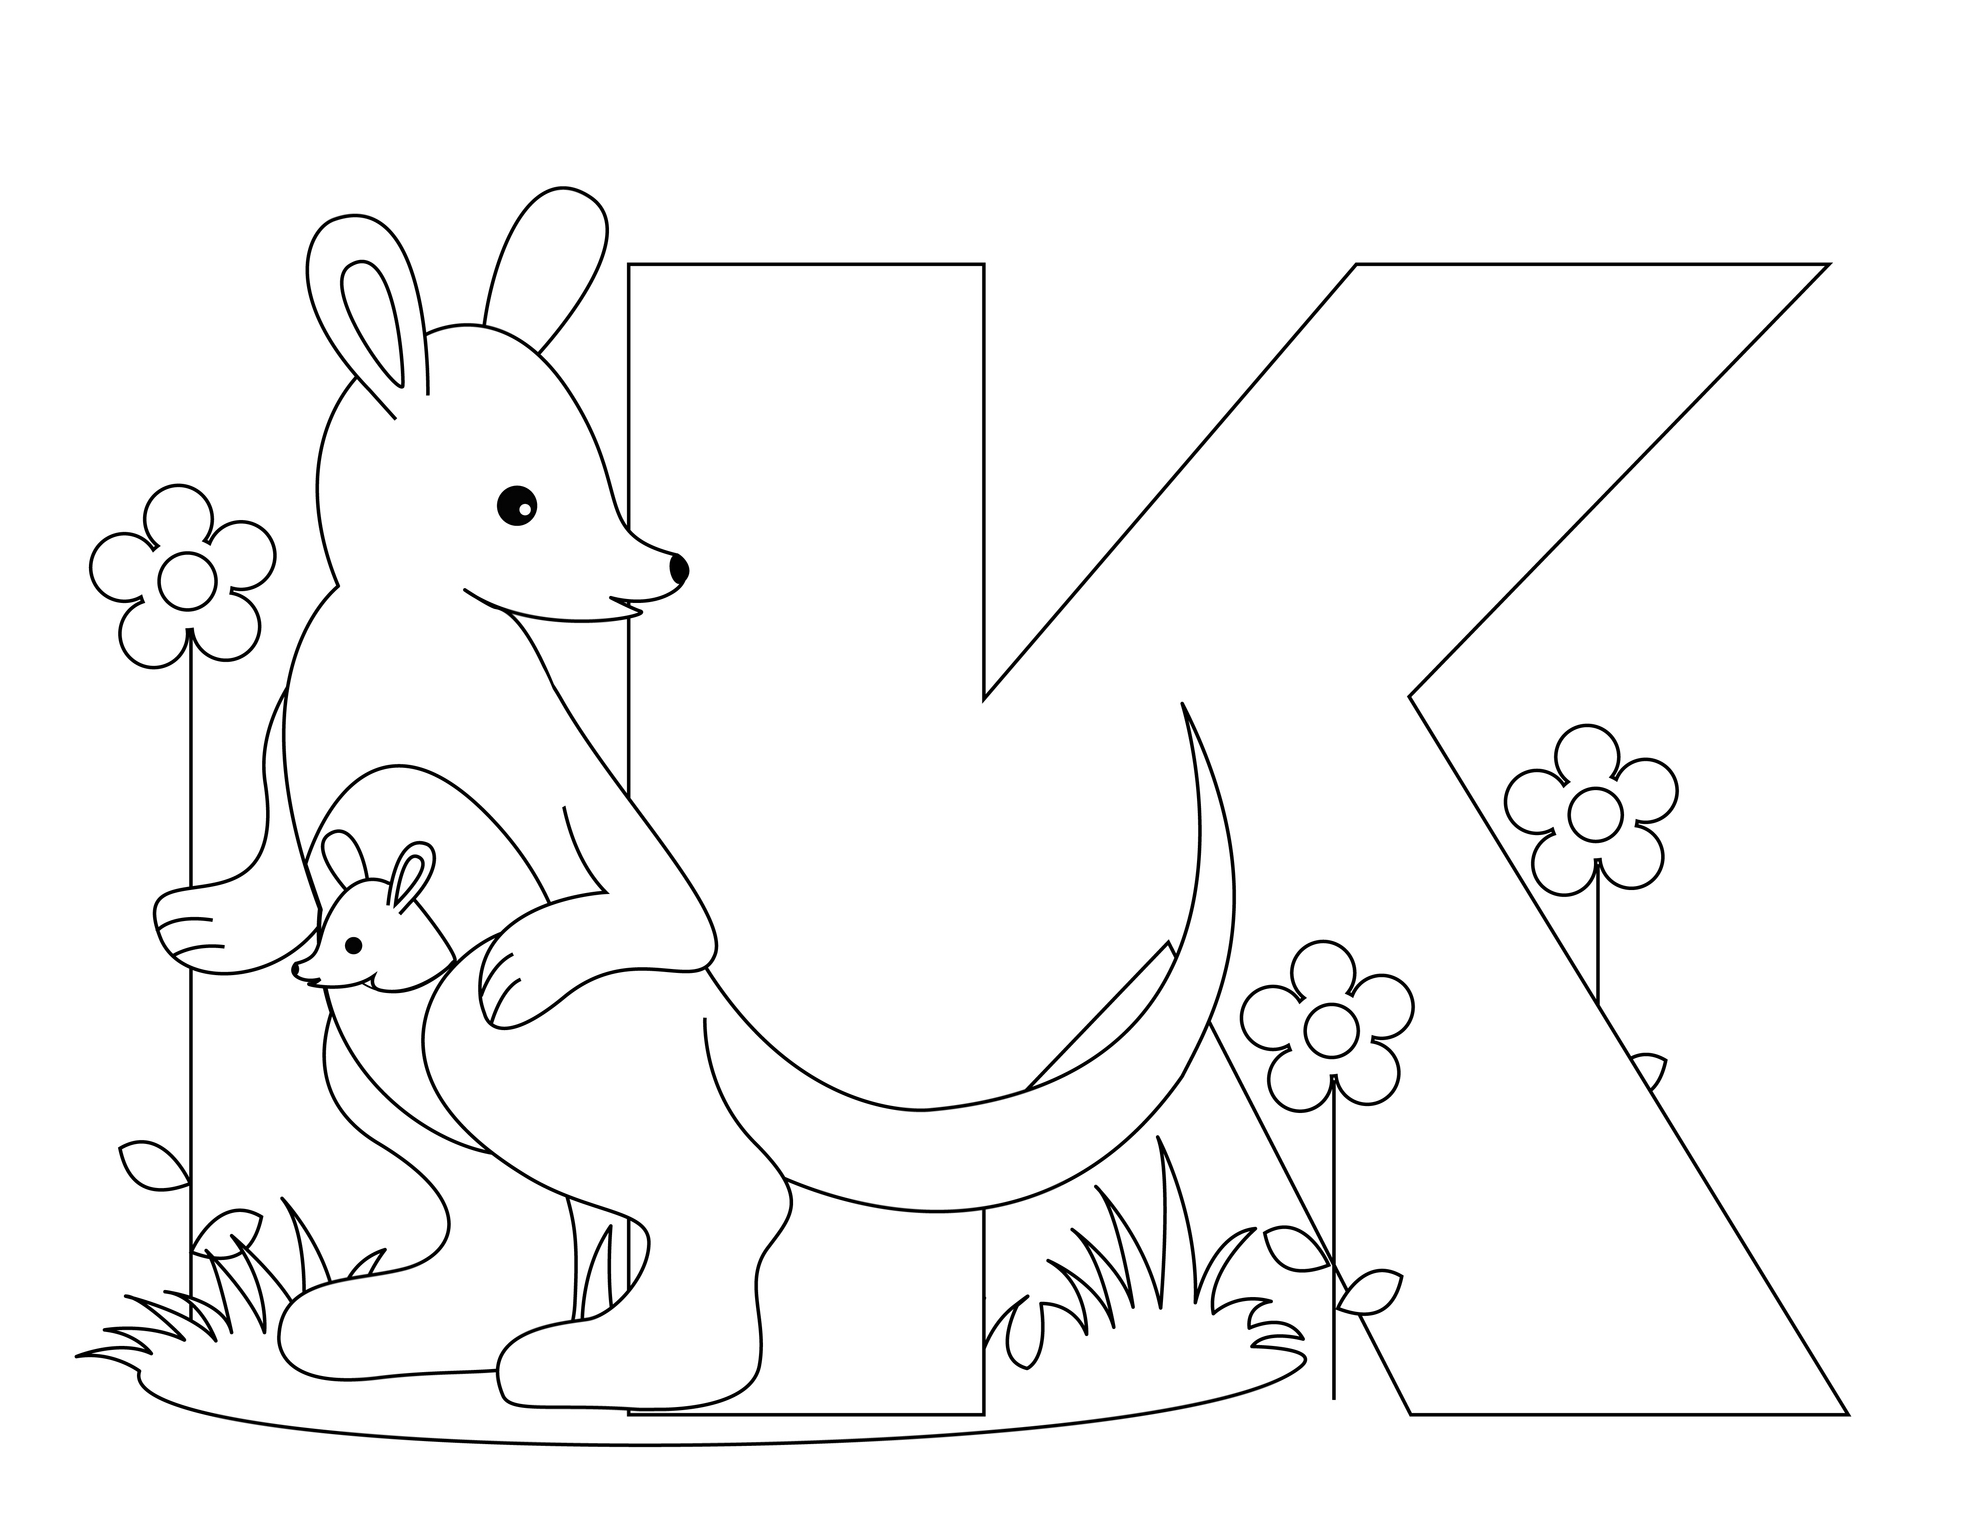 the letter k coloring pages - photo#23